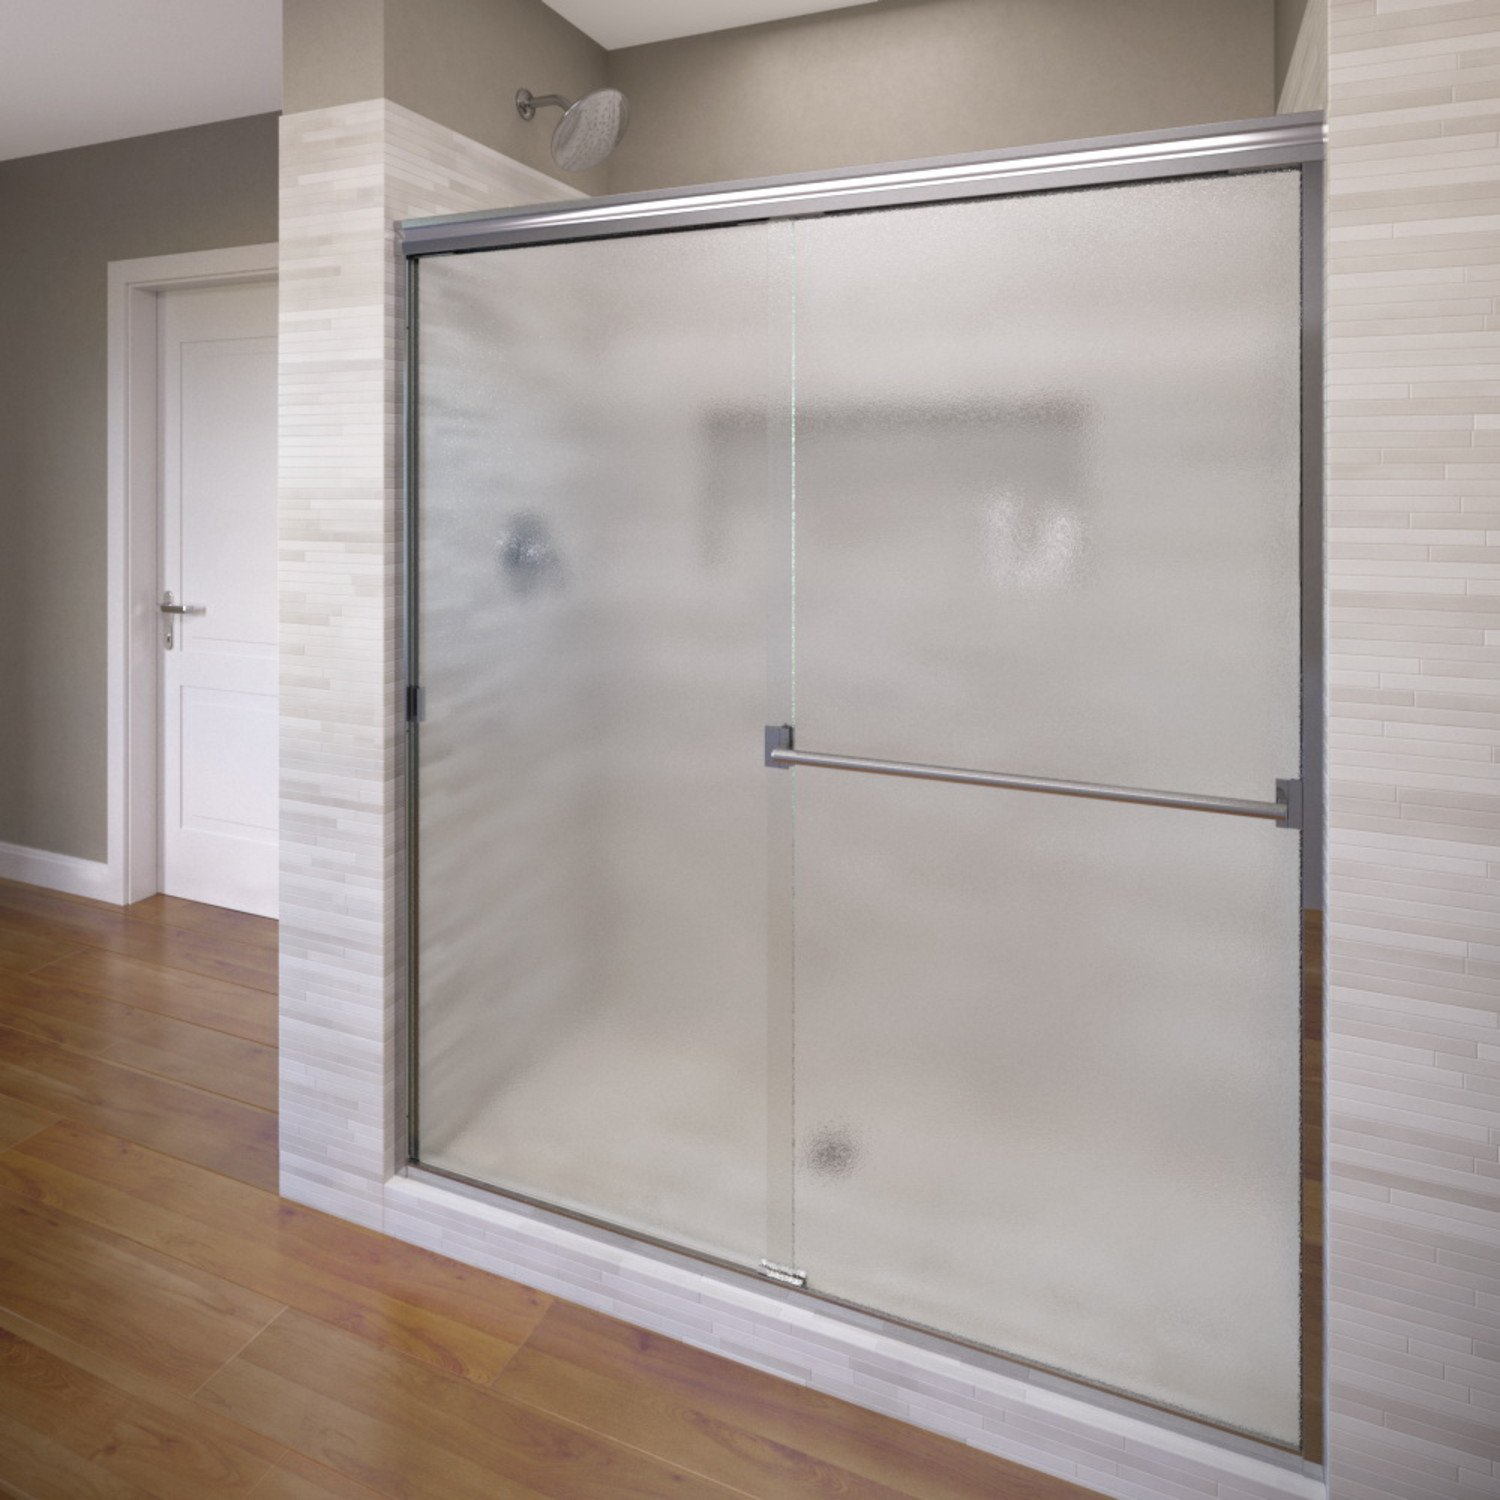 Basco Classic Sliding Shower Door, Fits 40-44 inch opening, Obscure Glass, Silver Finish